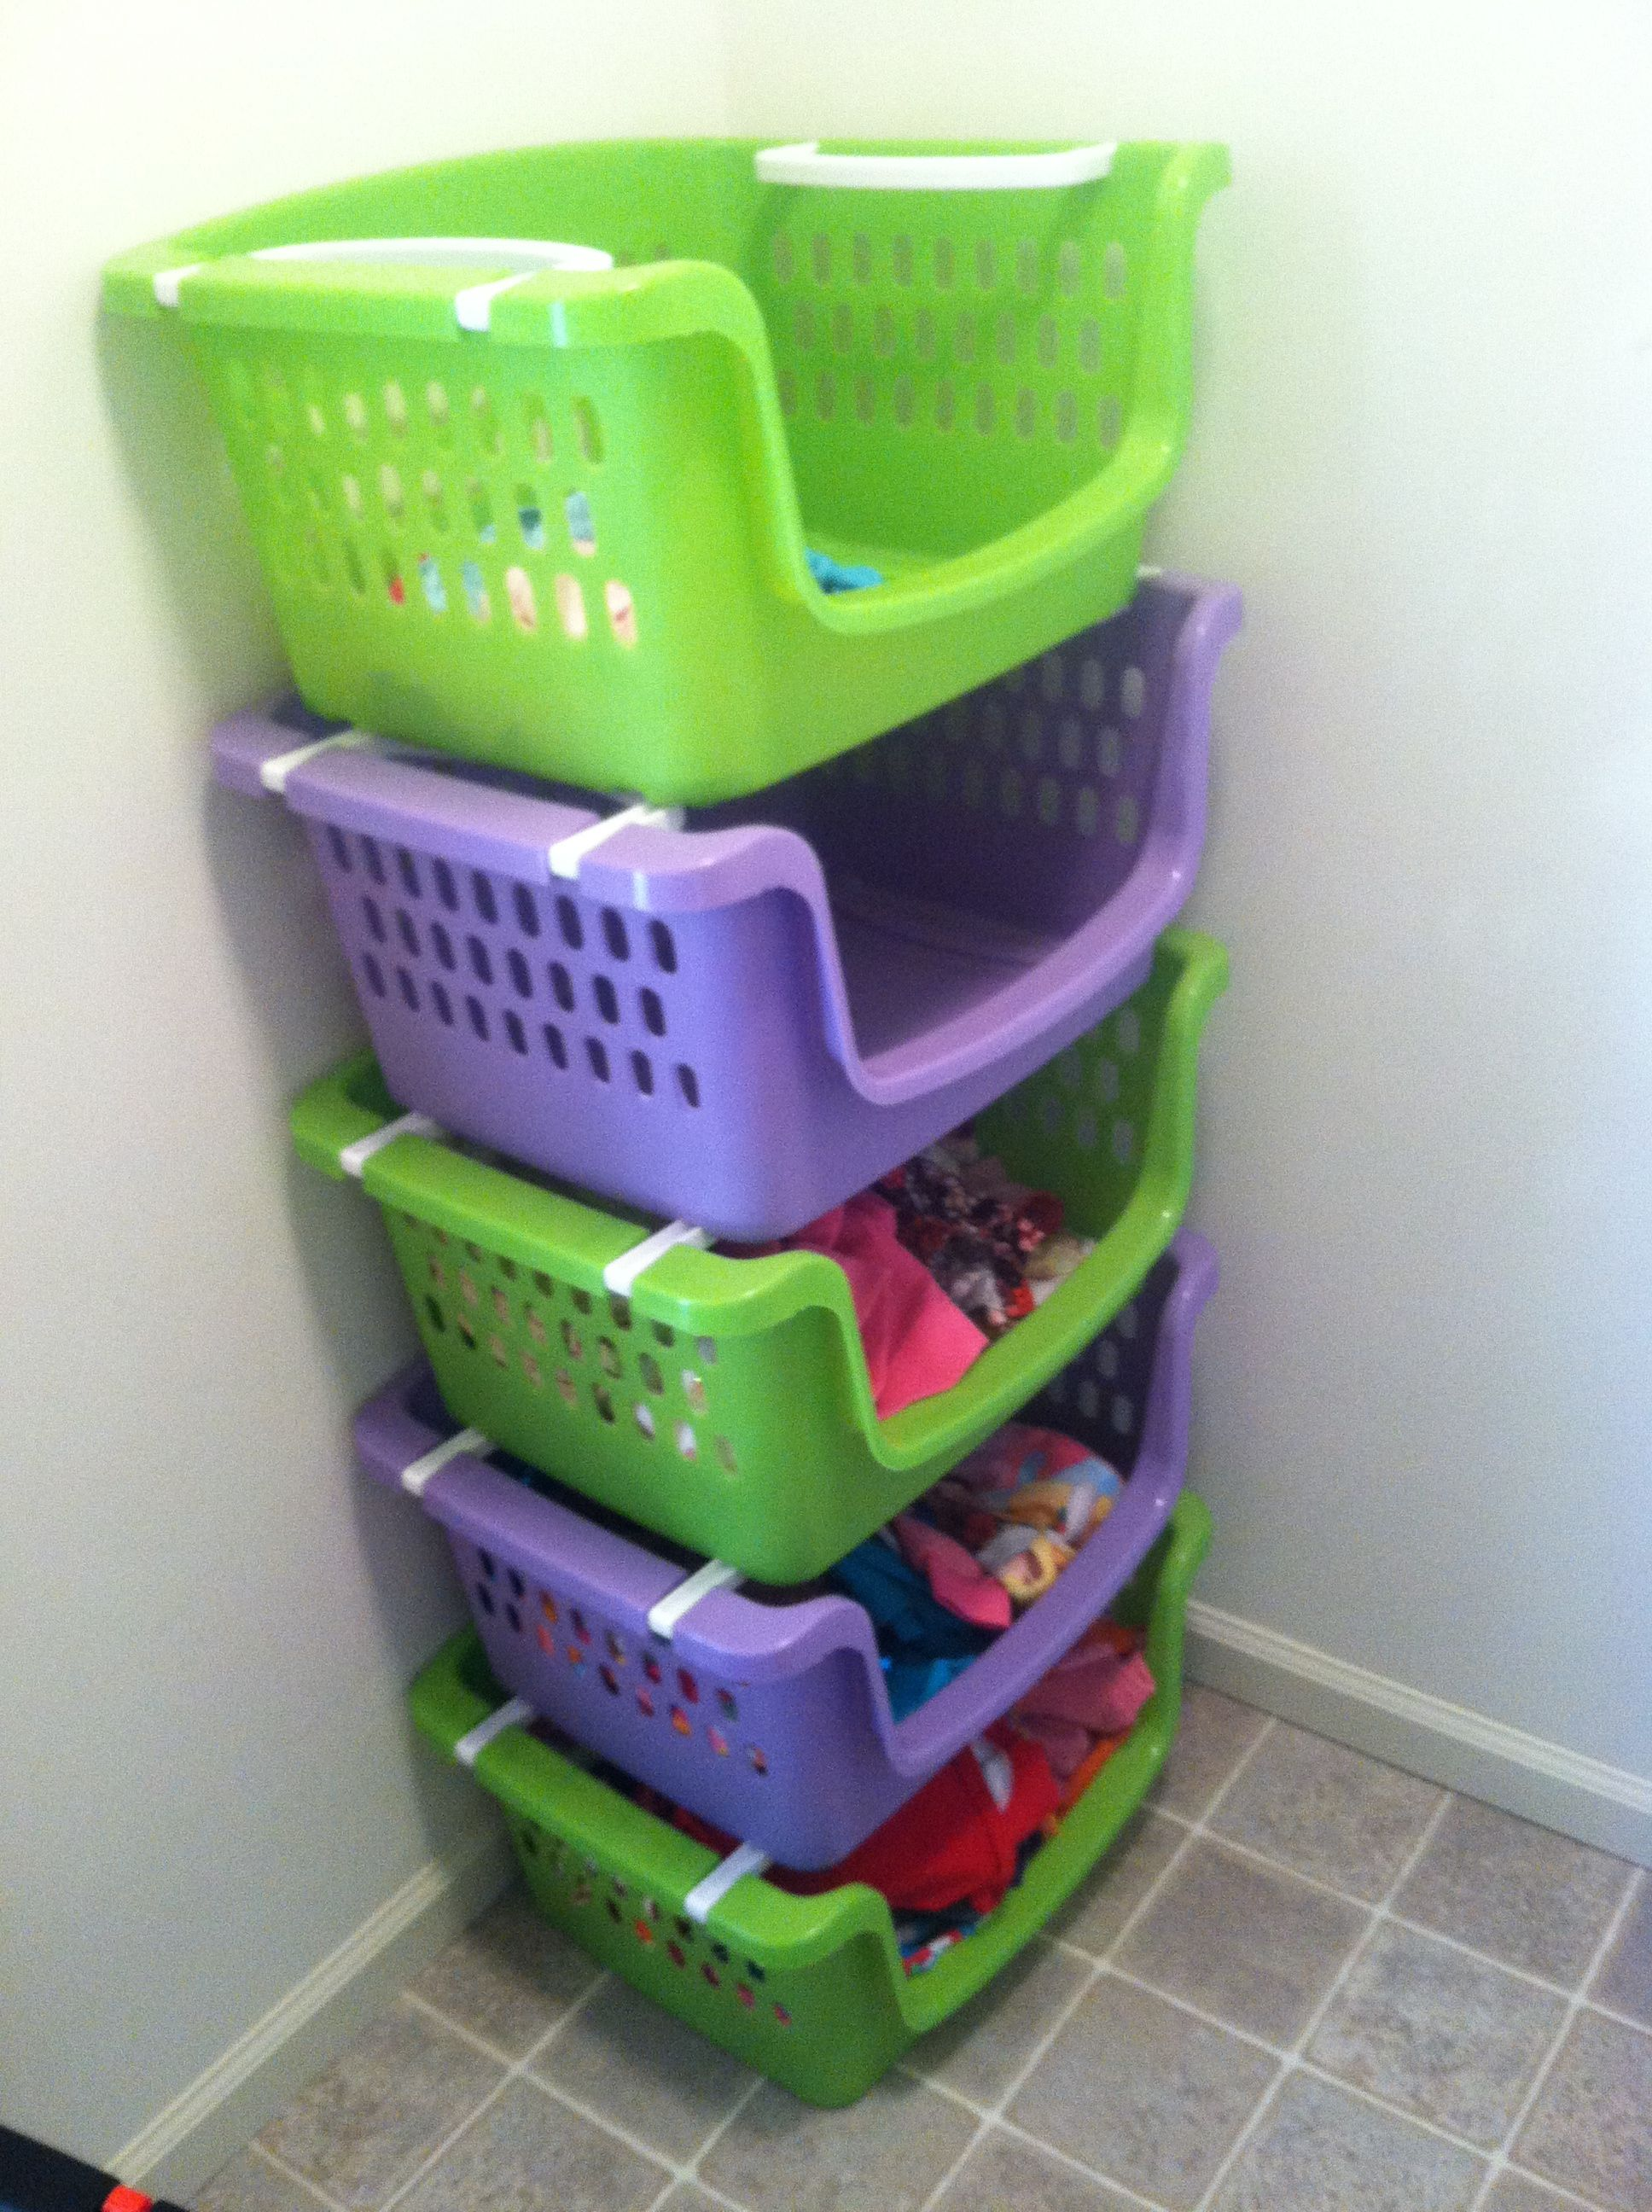 Laundry Chaos Laundry Room Storage Shelves Laundry Room Storage Small Laundry Room Organization